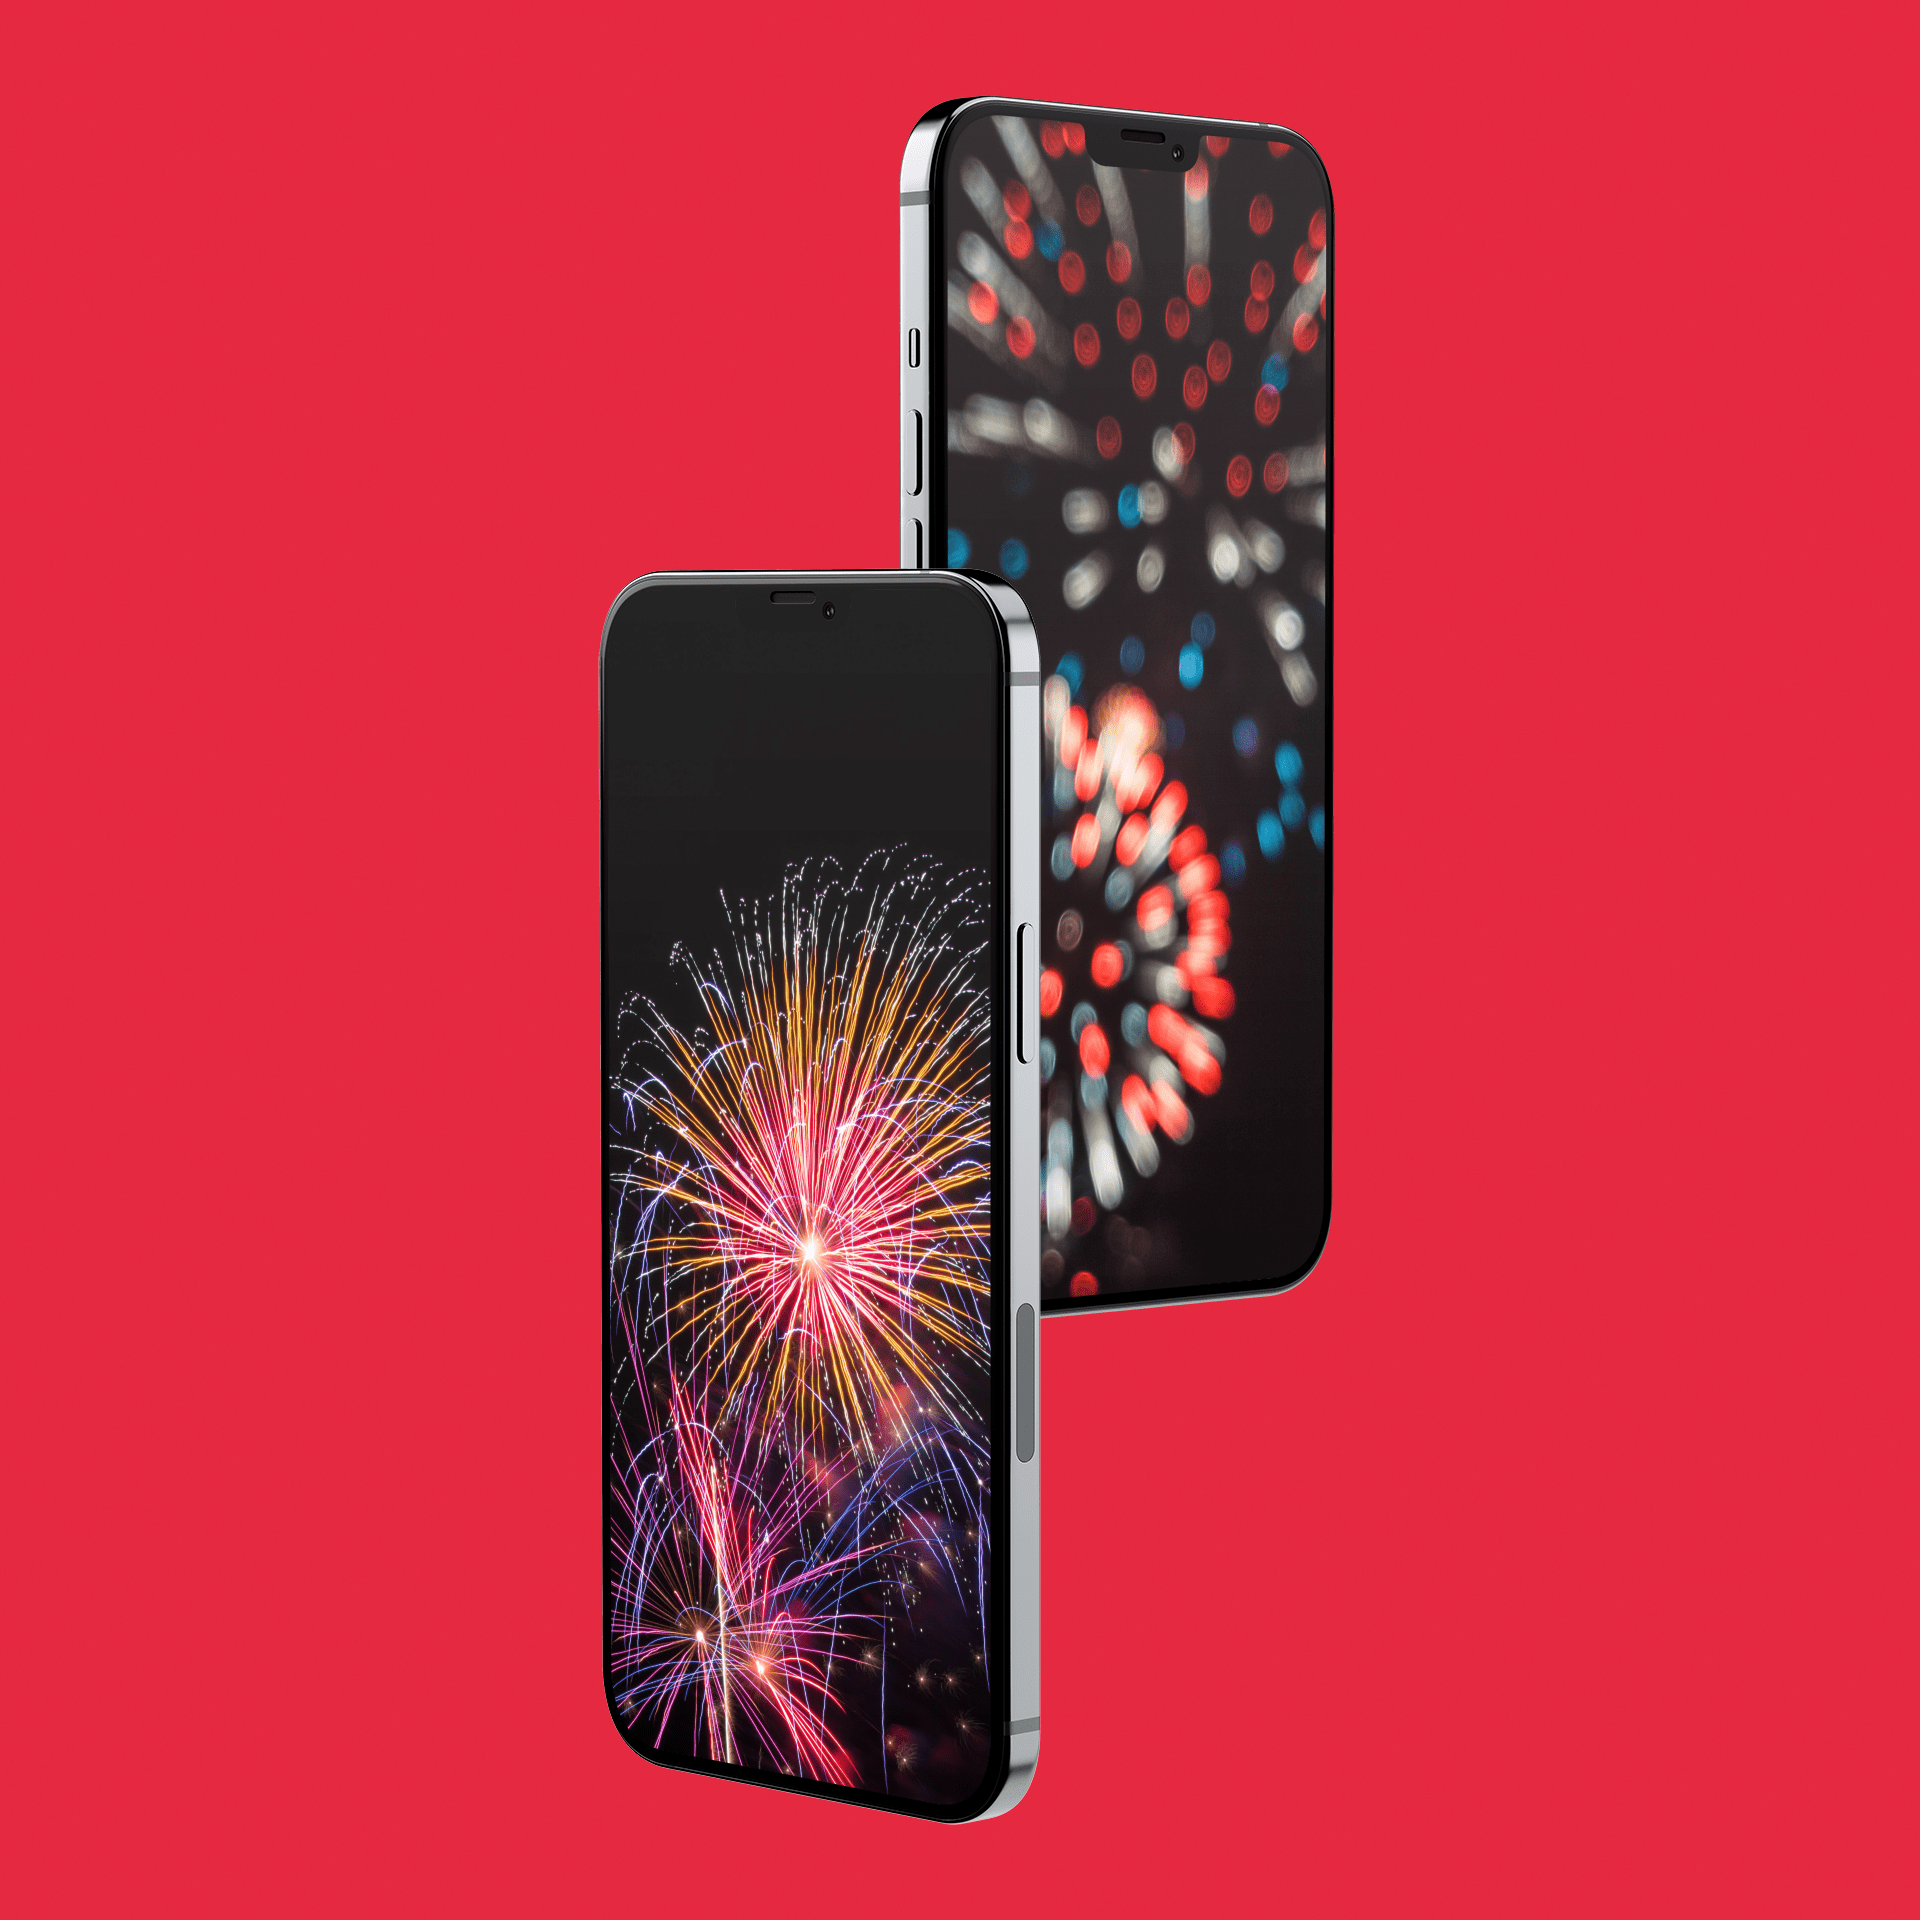 independence day iPhone fireworks wallpaper mockup